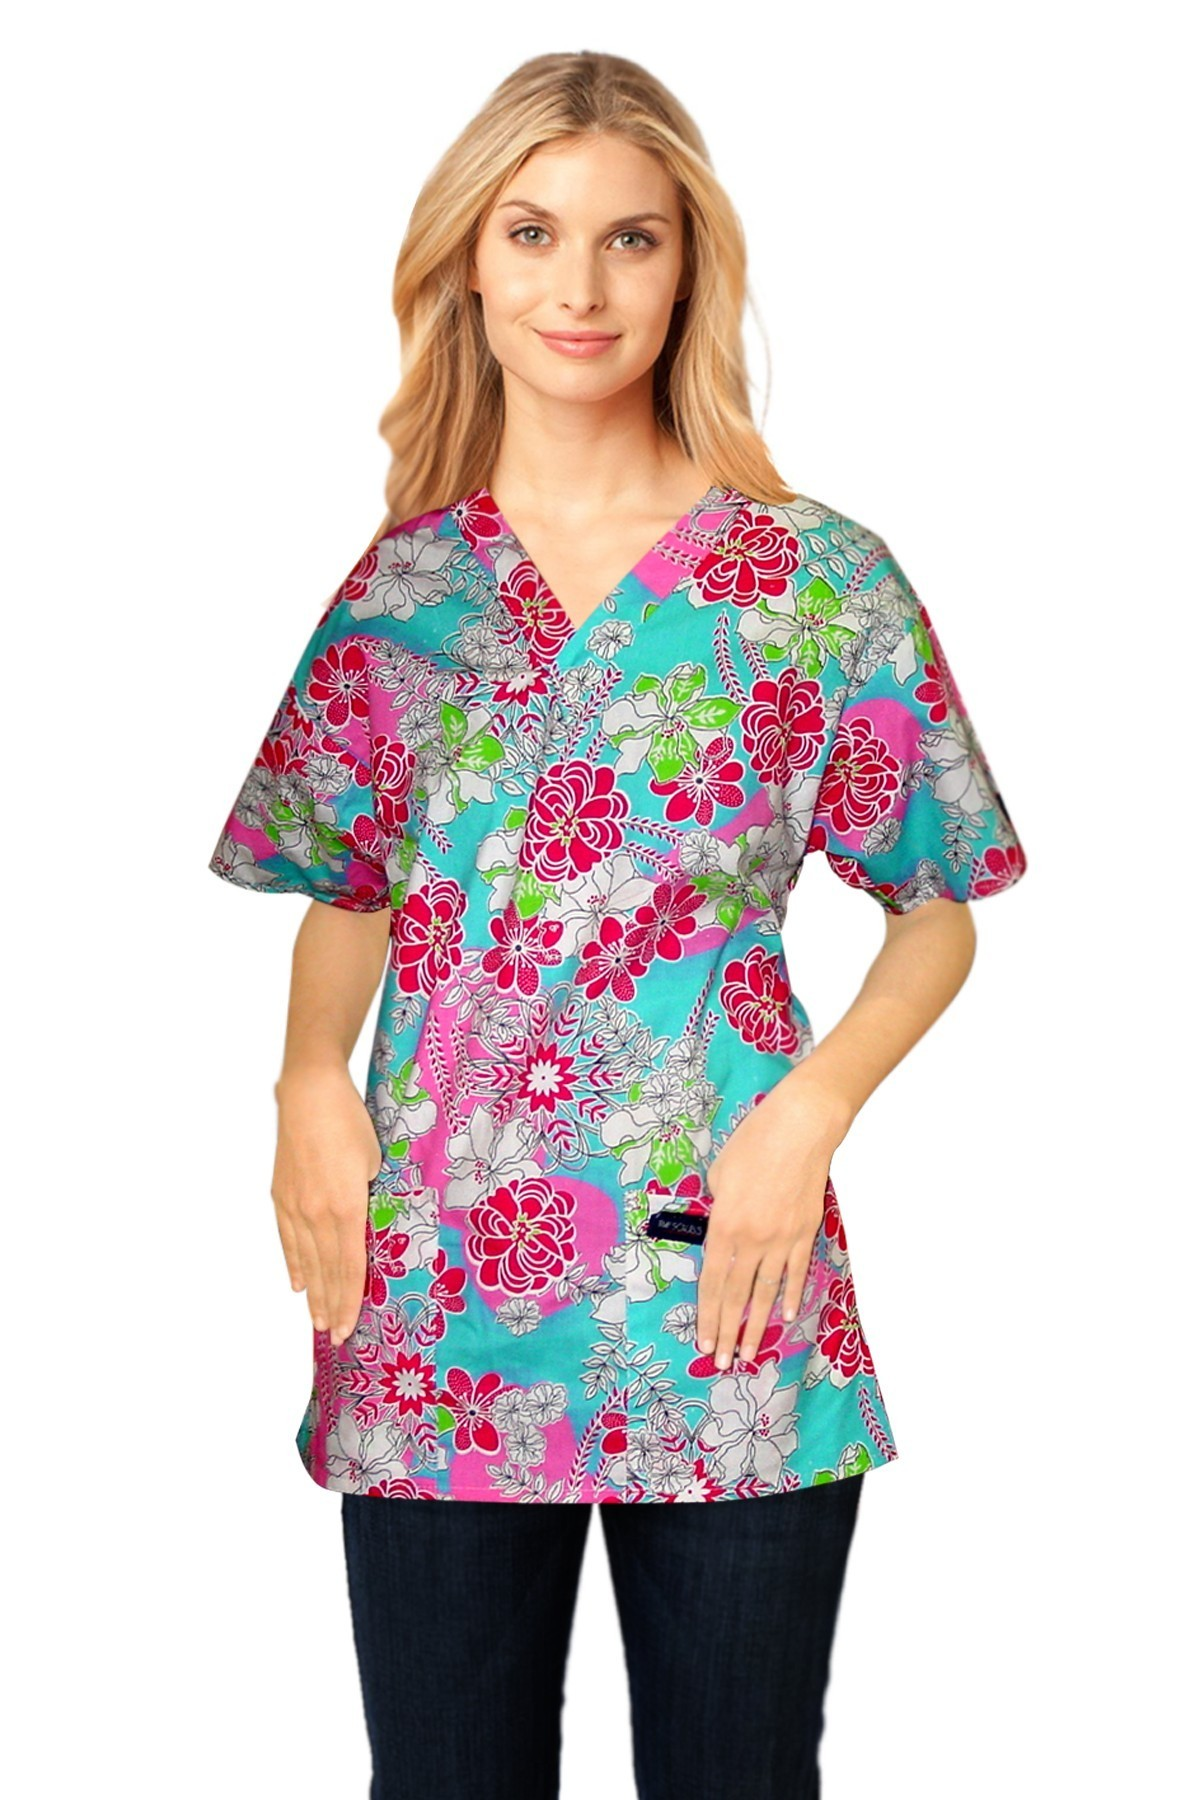 Printed scrub set 4 pocket ladies half sleeve white and pink flower print (2 pocket top and 2 pocket pant)